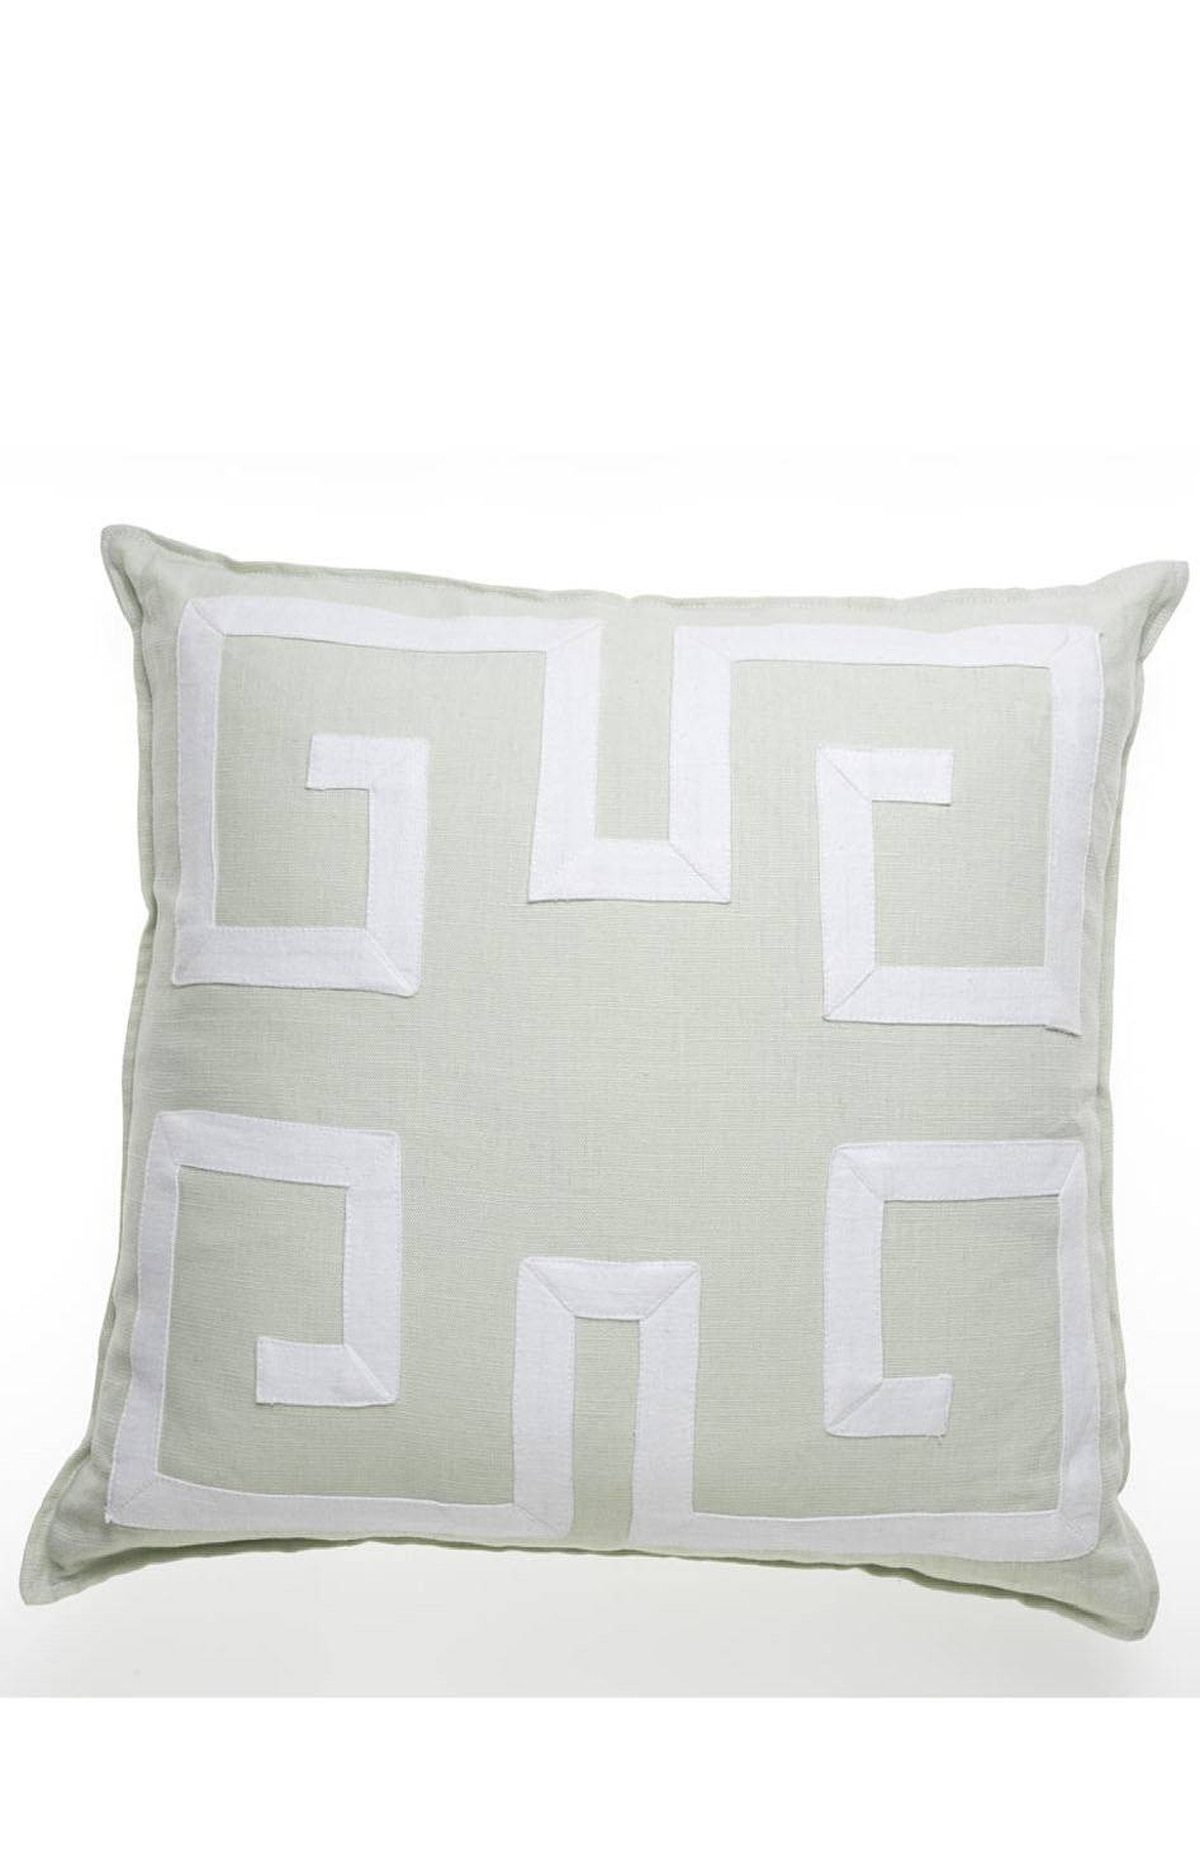 TREND: PASTELS Greek key linen pillow with down insert, $389 at Absolutely Inc. (www.absolutelyinc.com).